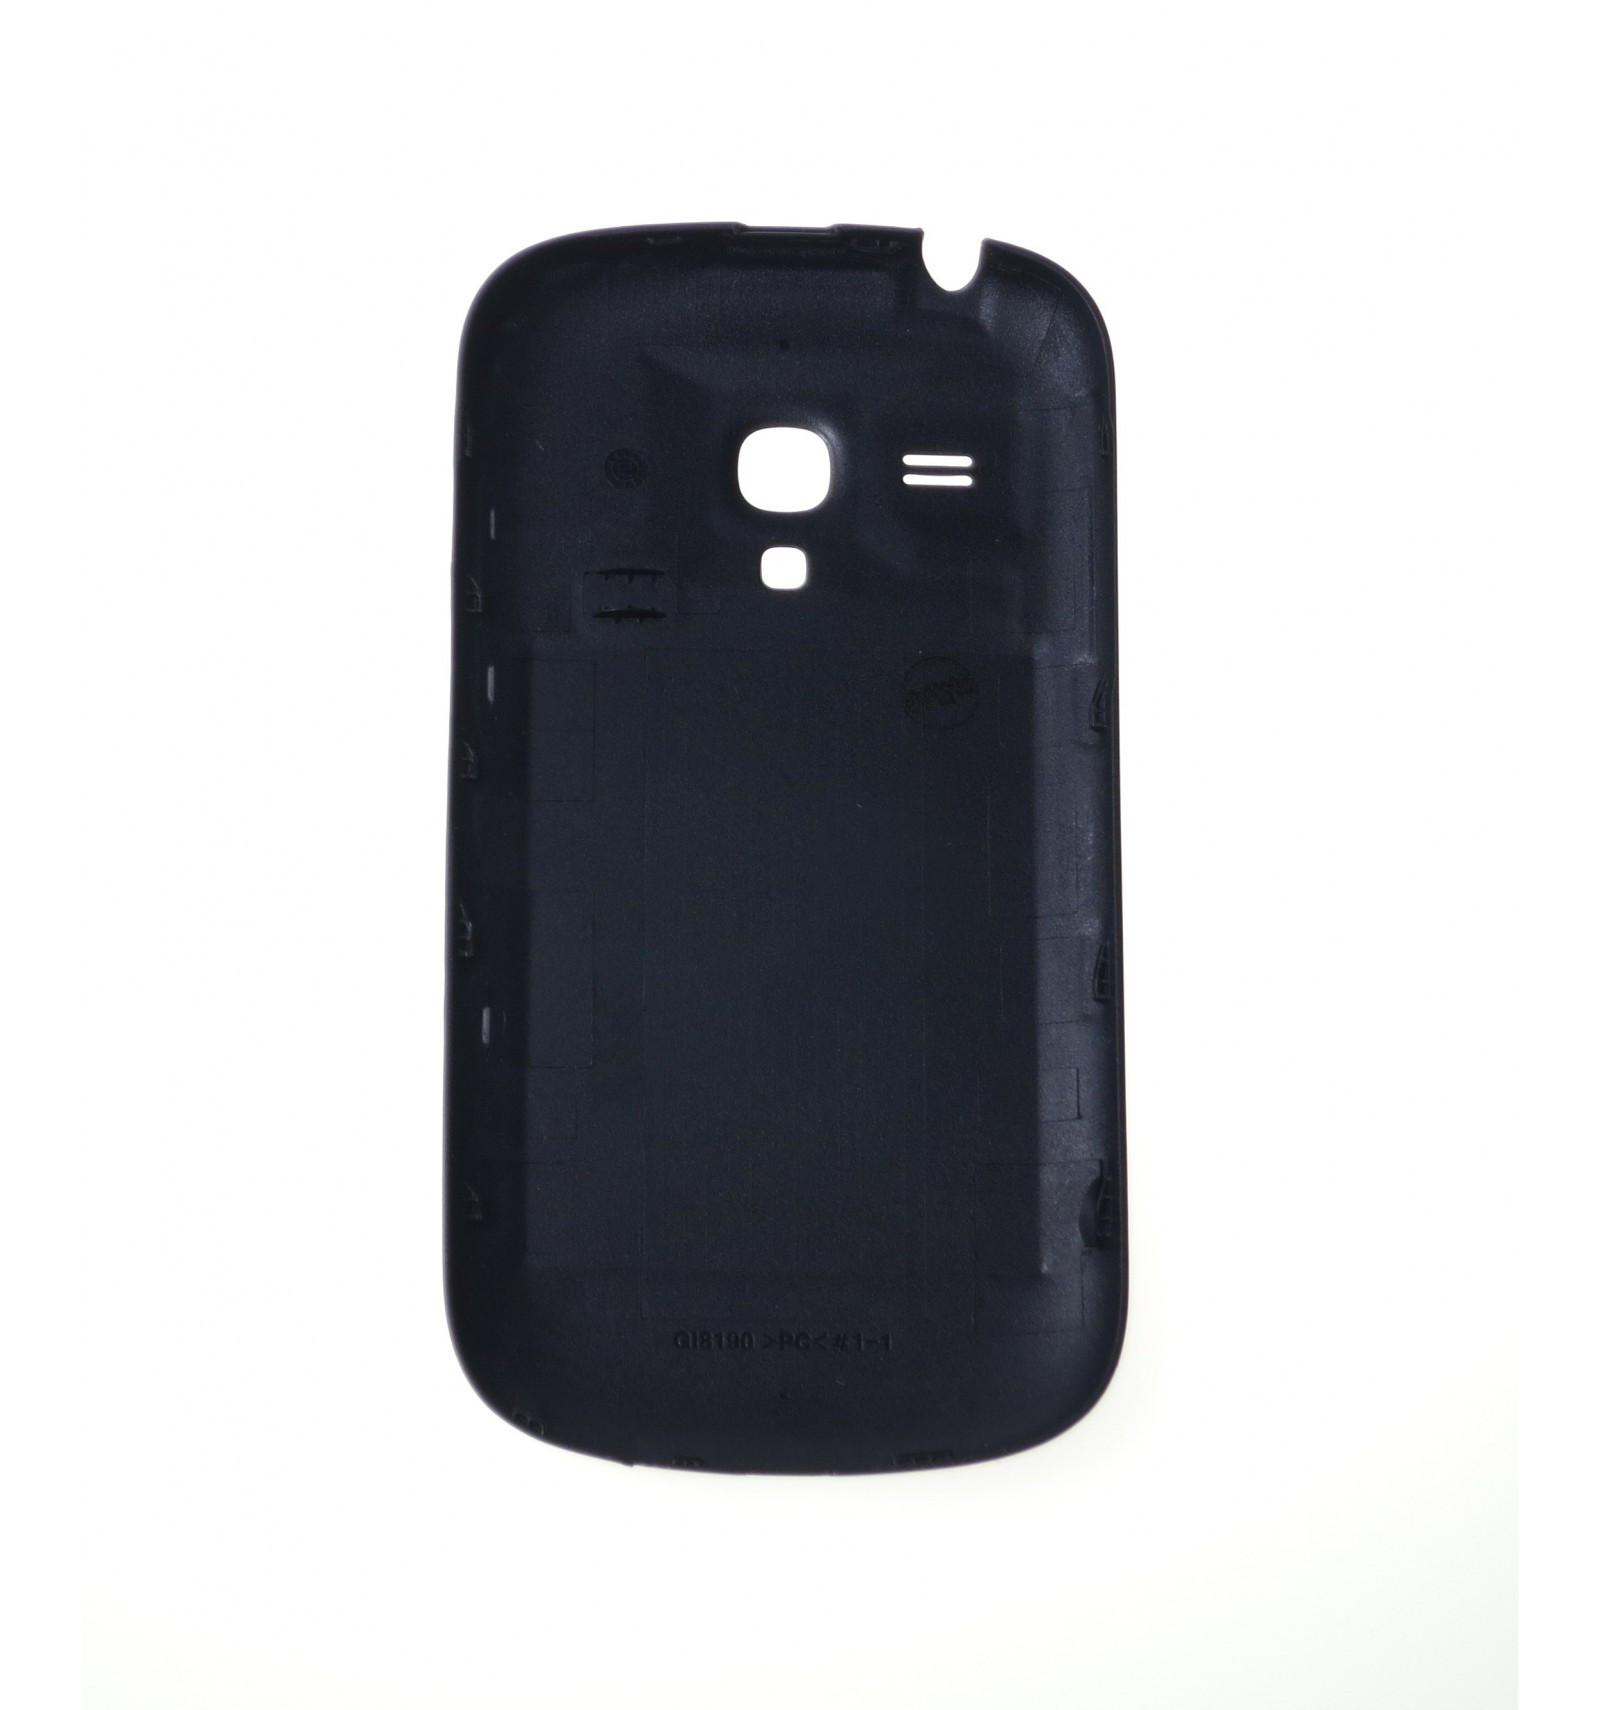 battery cover blue oem for samsung galaxy s3 mini i8190. Black Bedroom Furniture Sets. Home Design Ideas